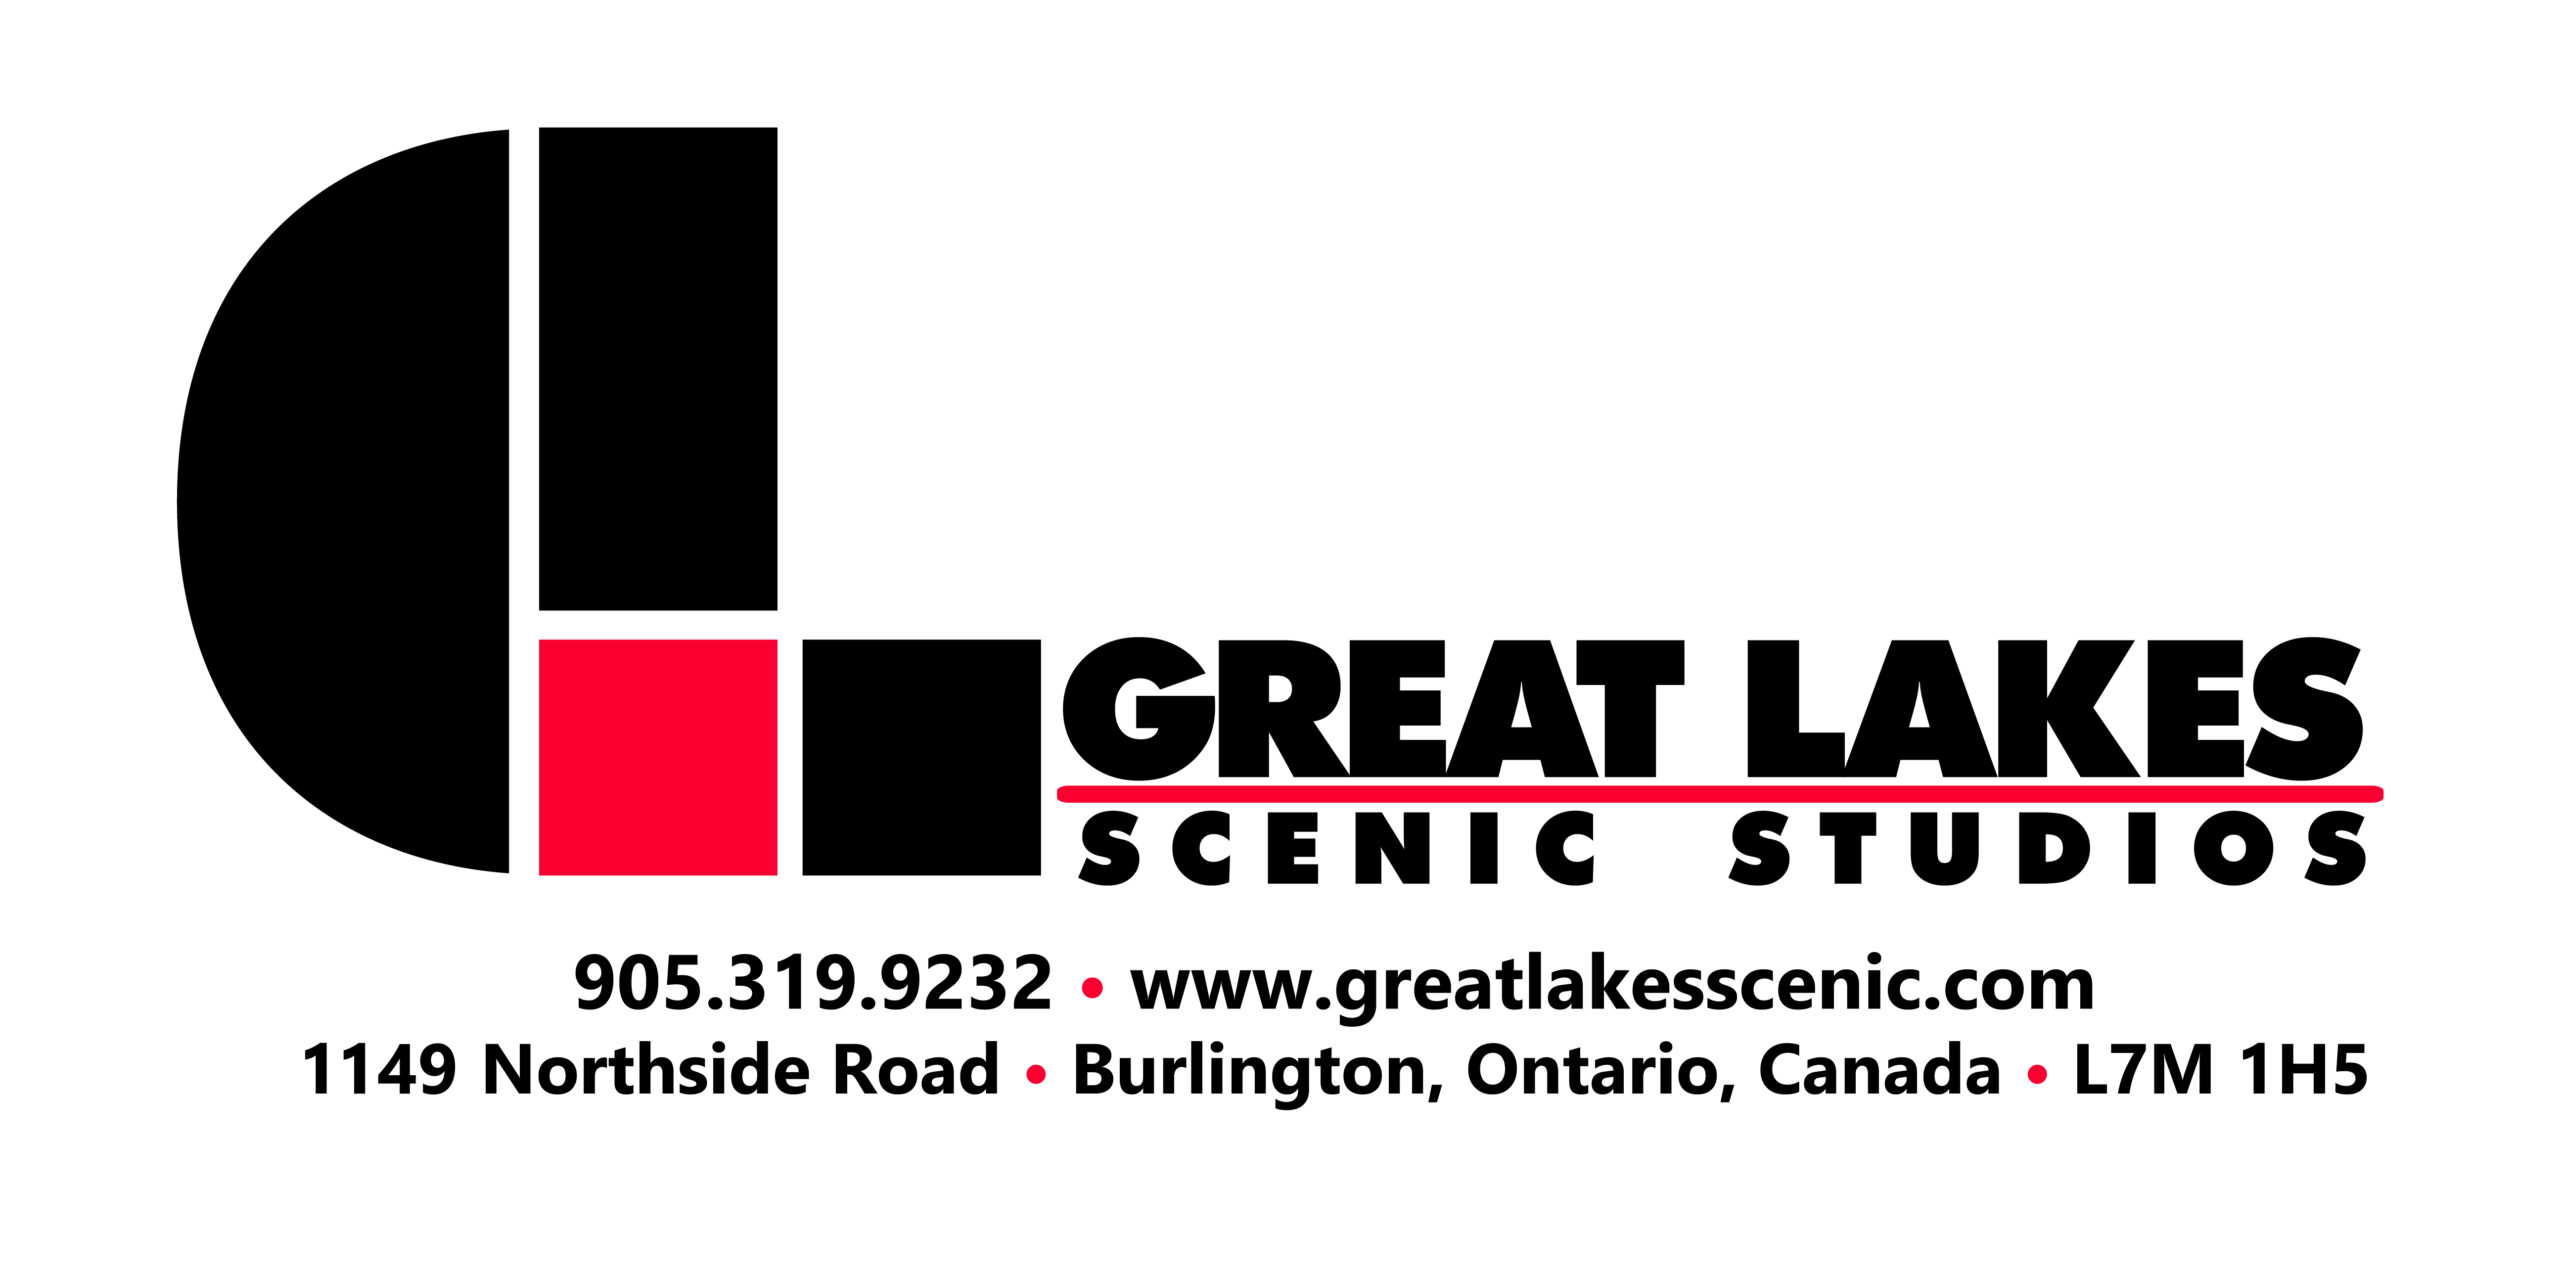 NEW DEALER – Welcoming Great Lakes Scenic Studios!